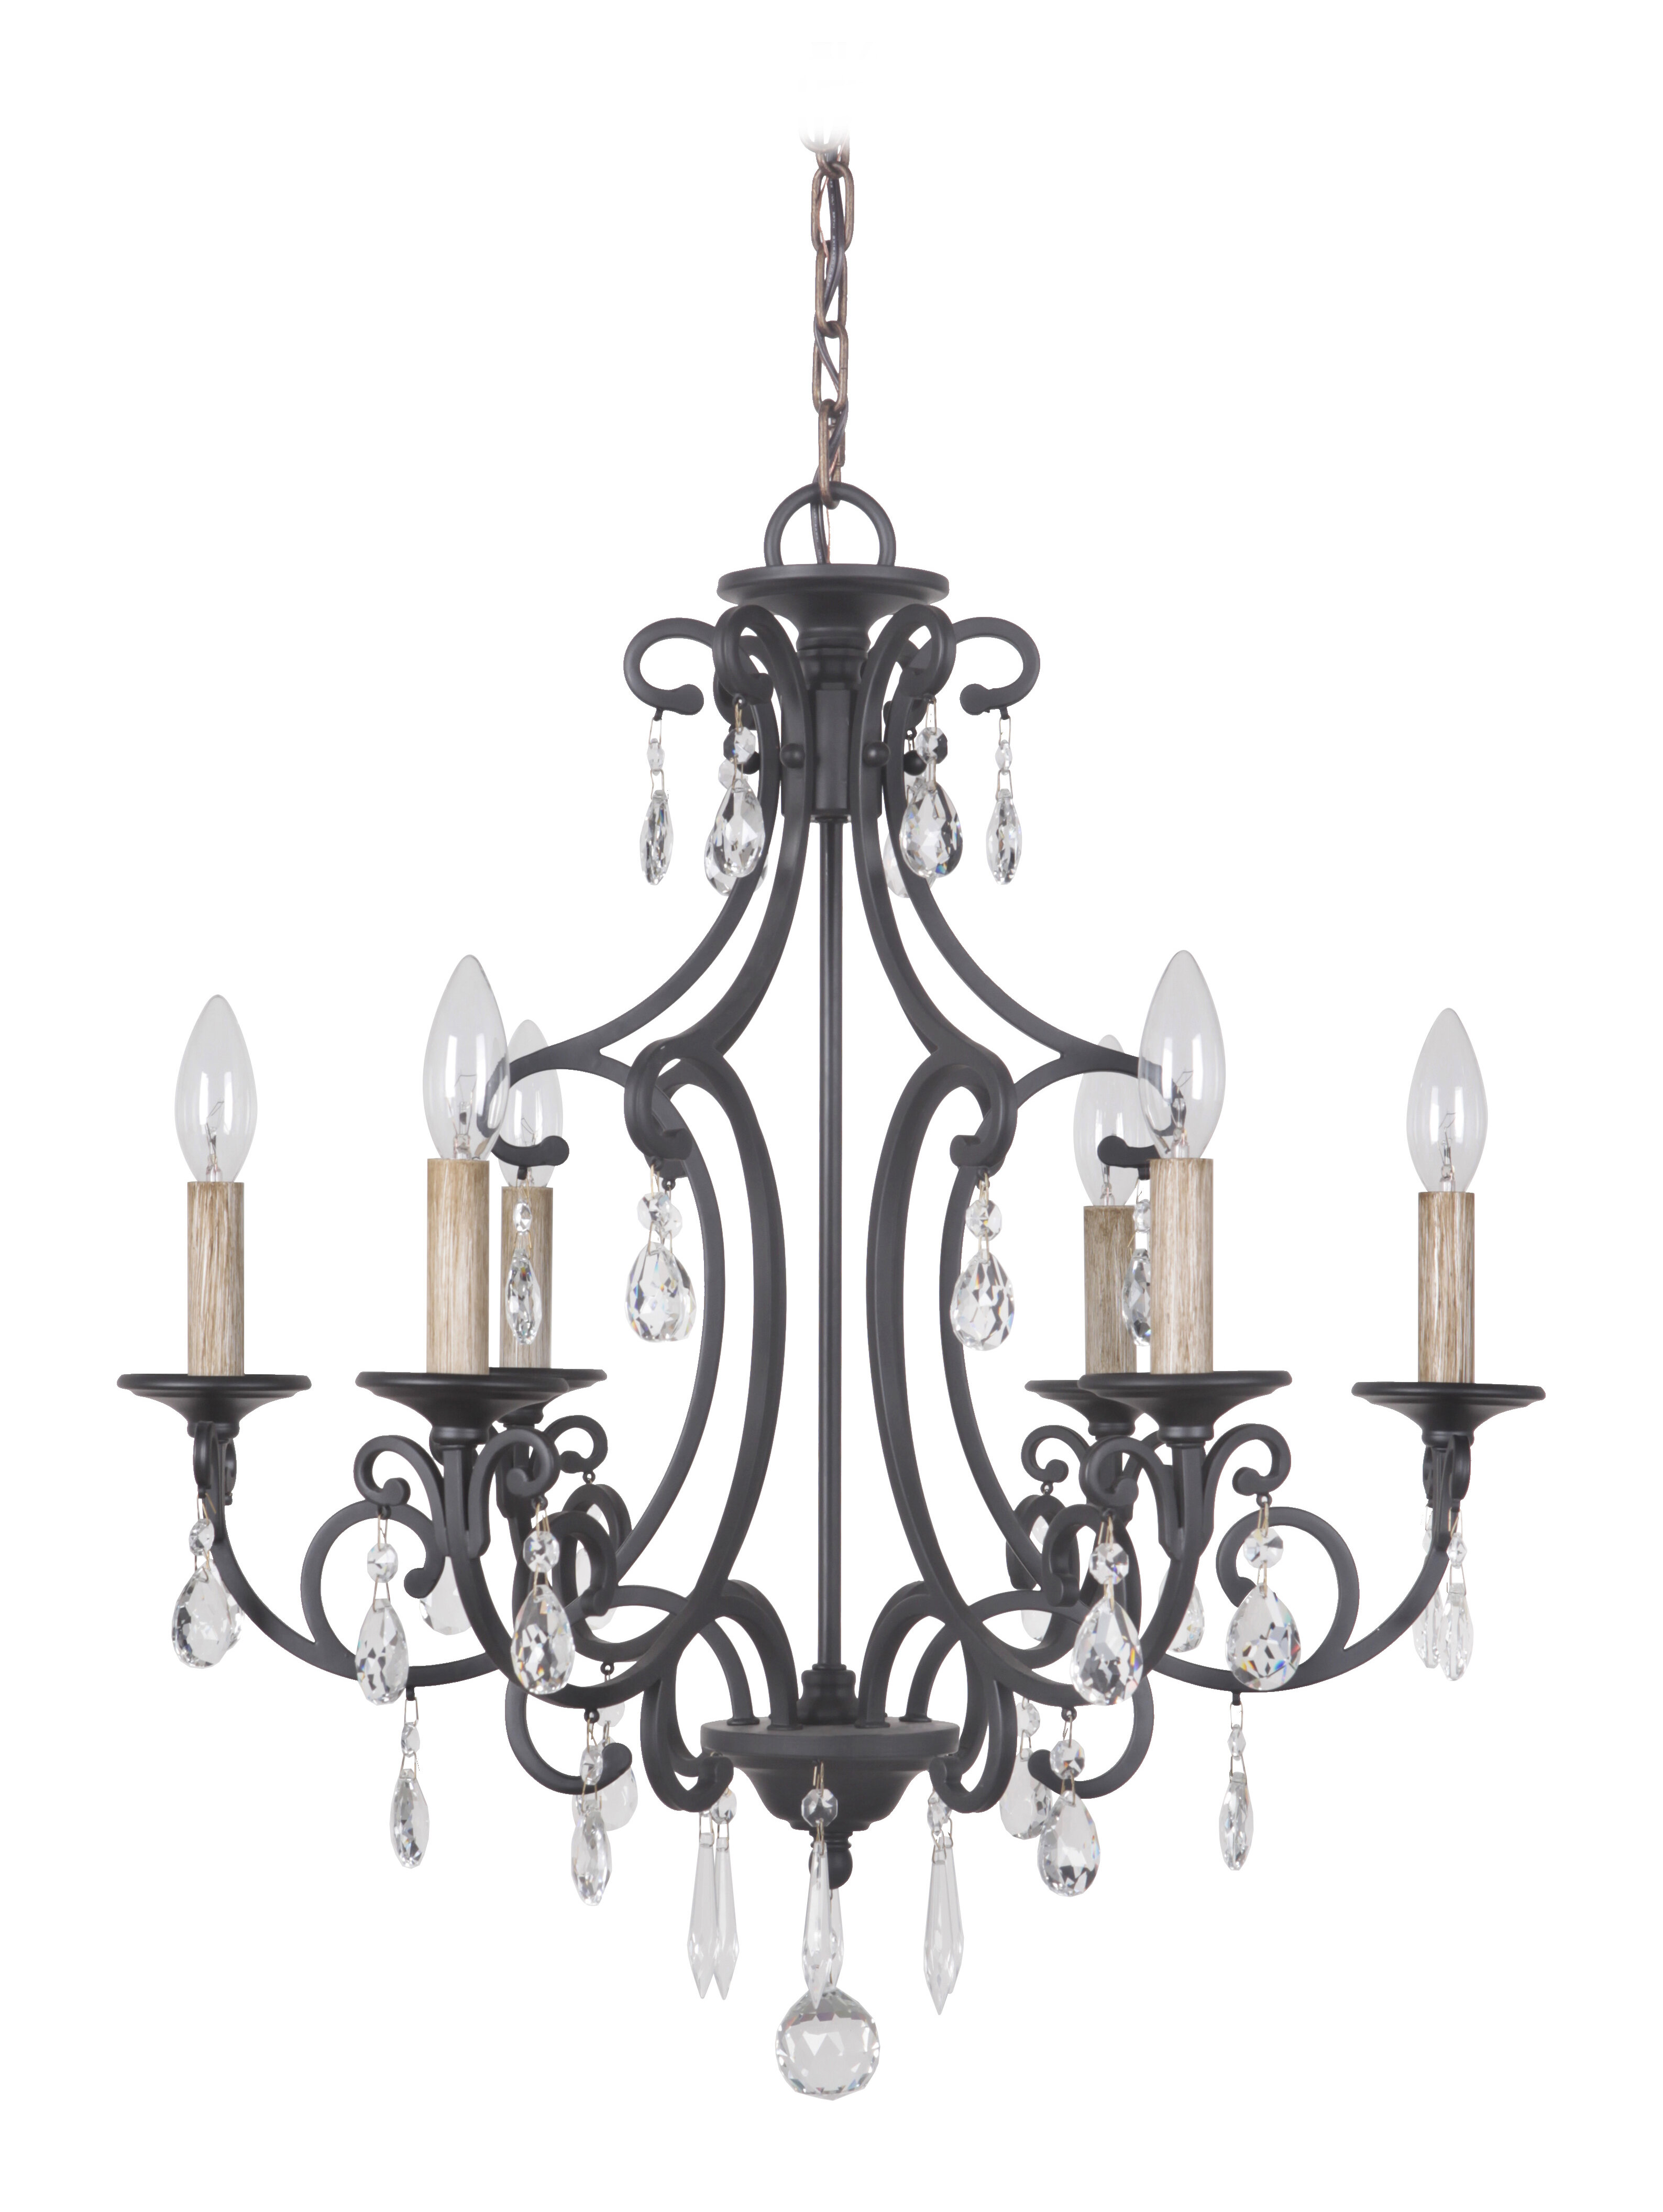 Astoria Grand Vanderbilt 6 Light Candle Style Classic Traditional Chandelier With Crystal Accents Accents Reviews Wayfair